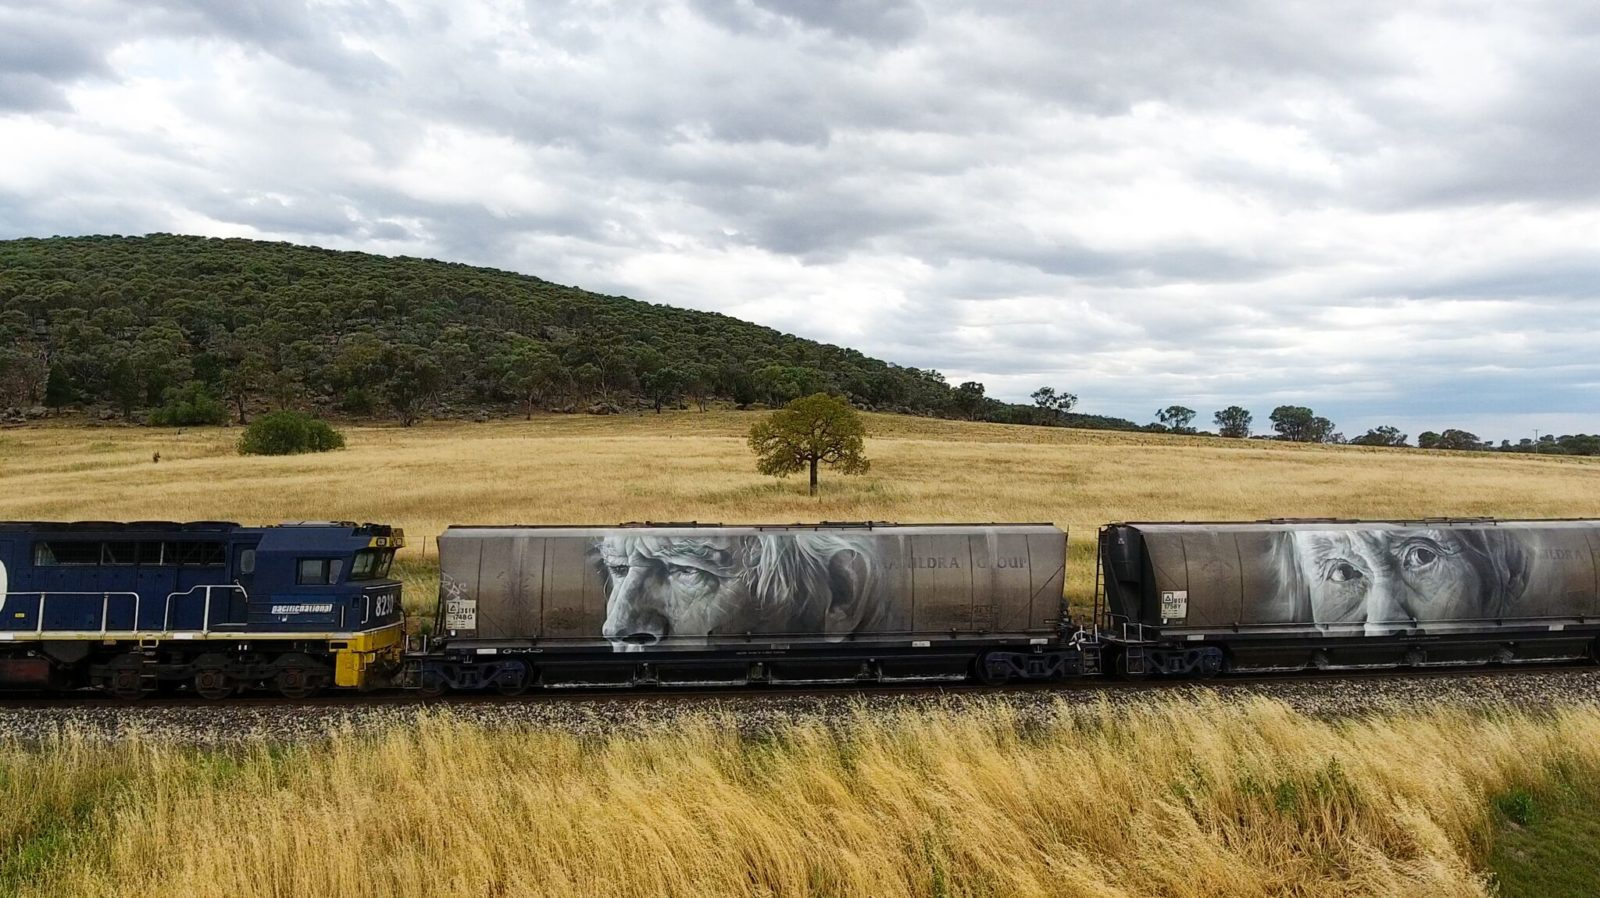 Guido van Helten paints freight trains for The Wanderers series